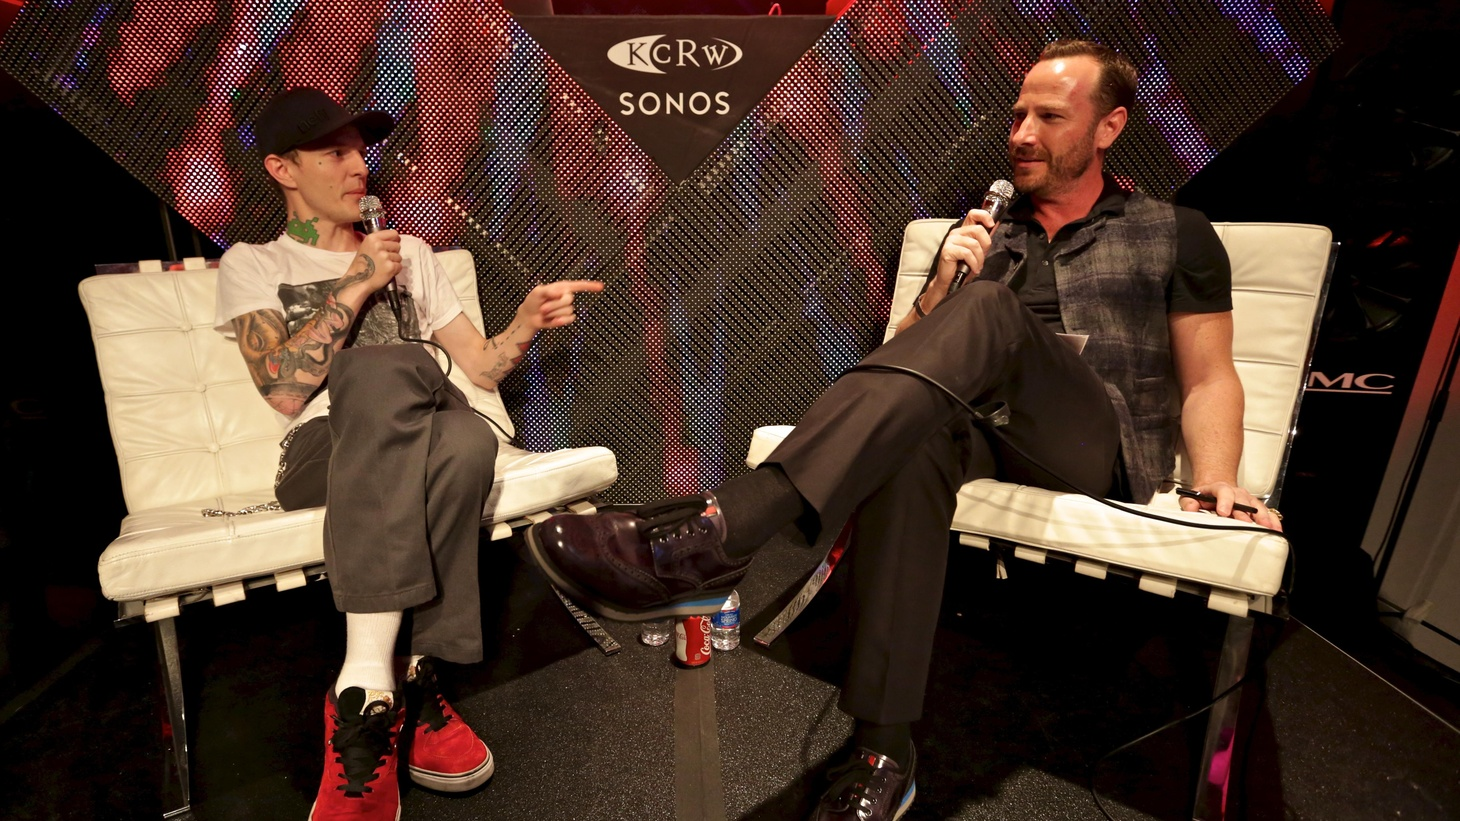 Last Fall at a special Sonos studios session in Hollywood for a small group of fans, deadmau5 joined me for an interview and performance.